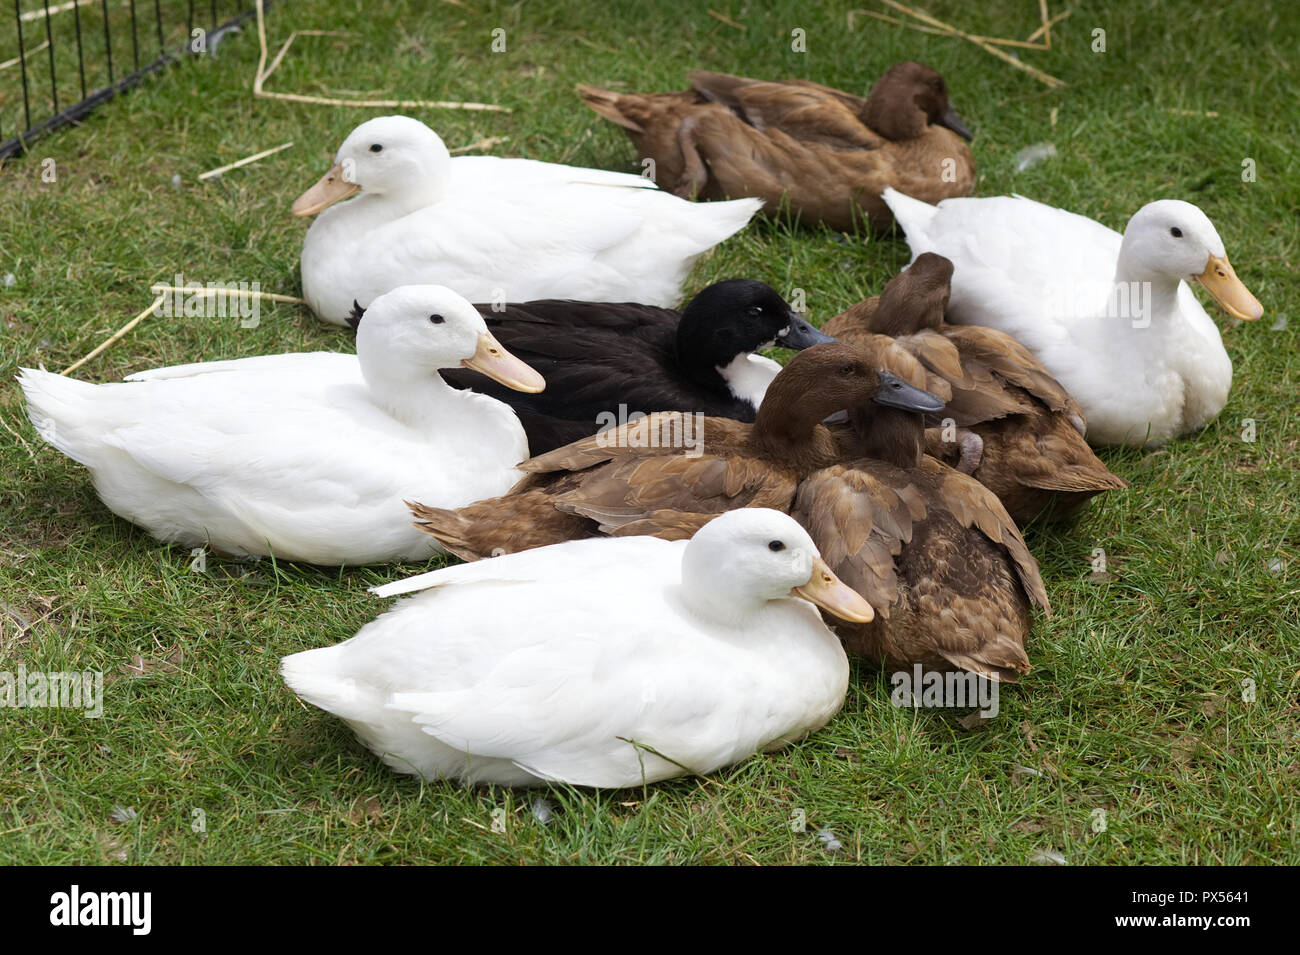 Ducks in a pen at a showground - Stock Image